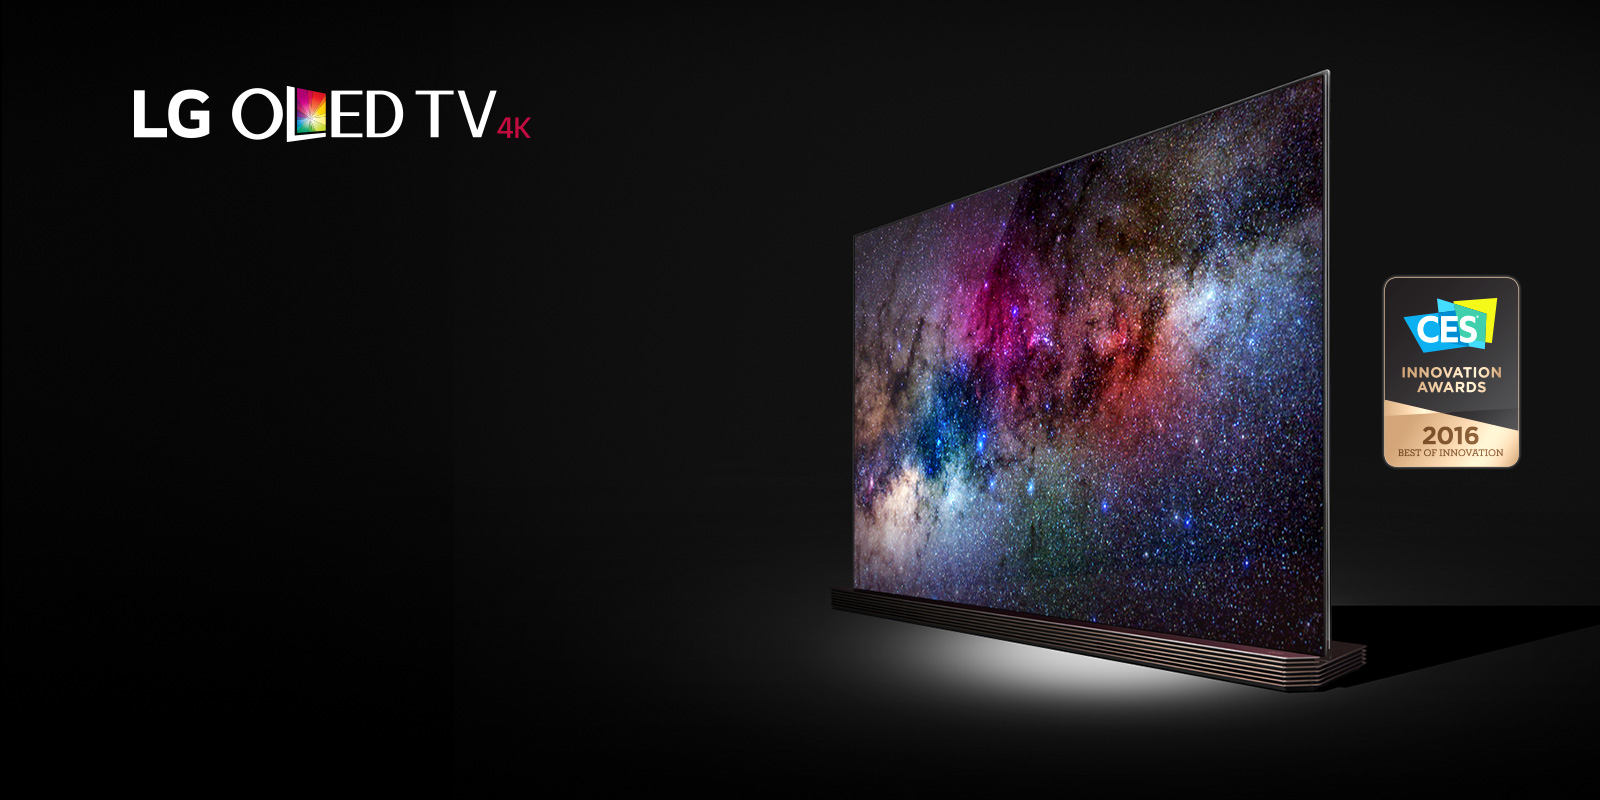 O Led Lg Oled Tvs: How Do They Deliver Impressive Picture